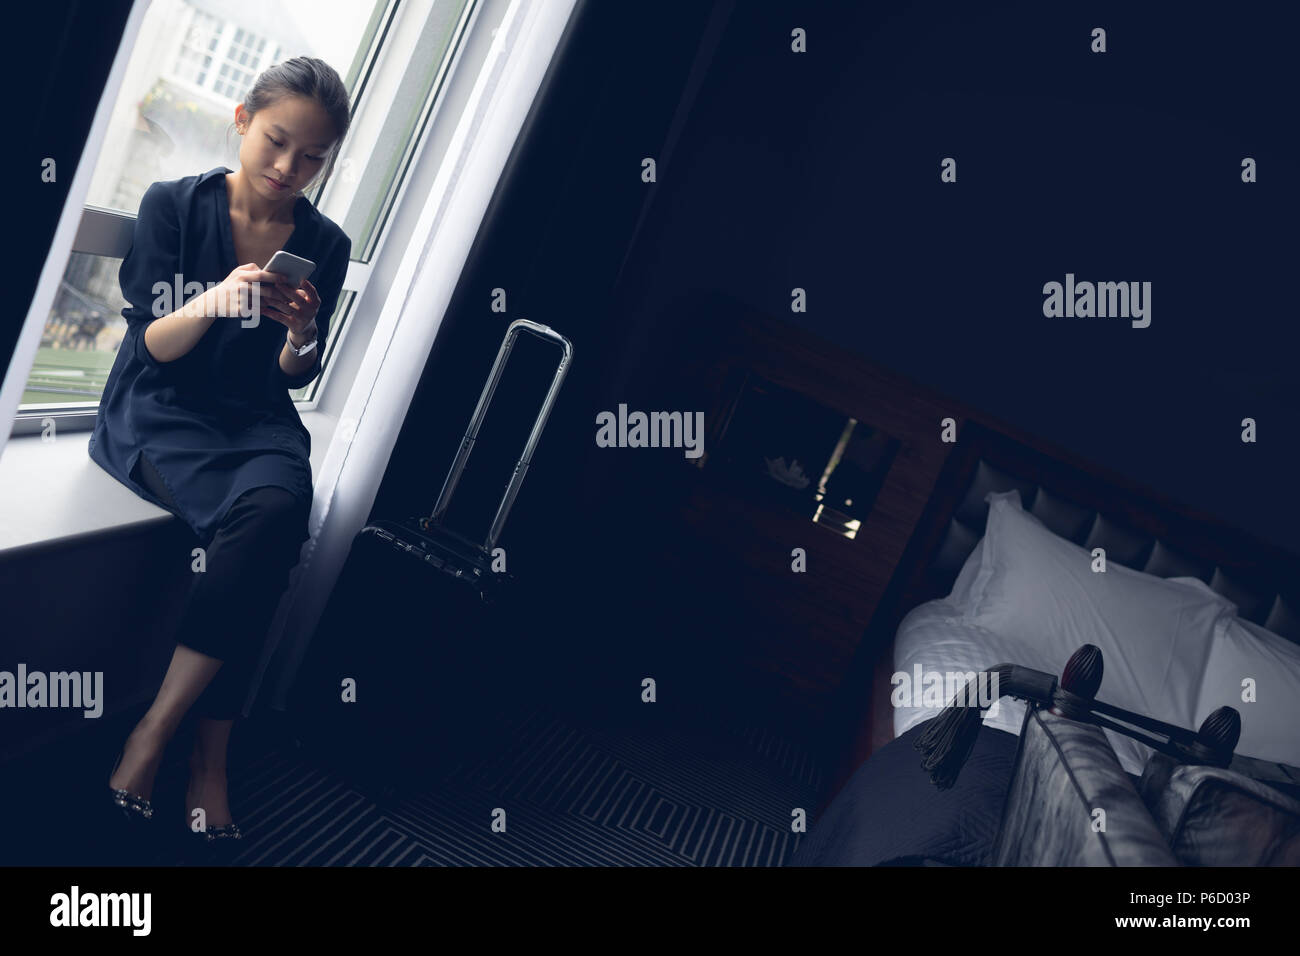 Woman using mobile phone in hotel room Banque D'Images